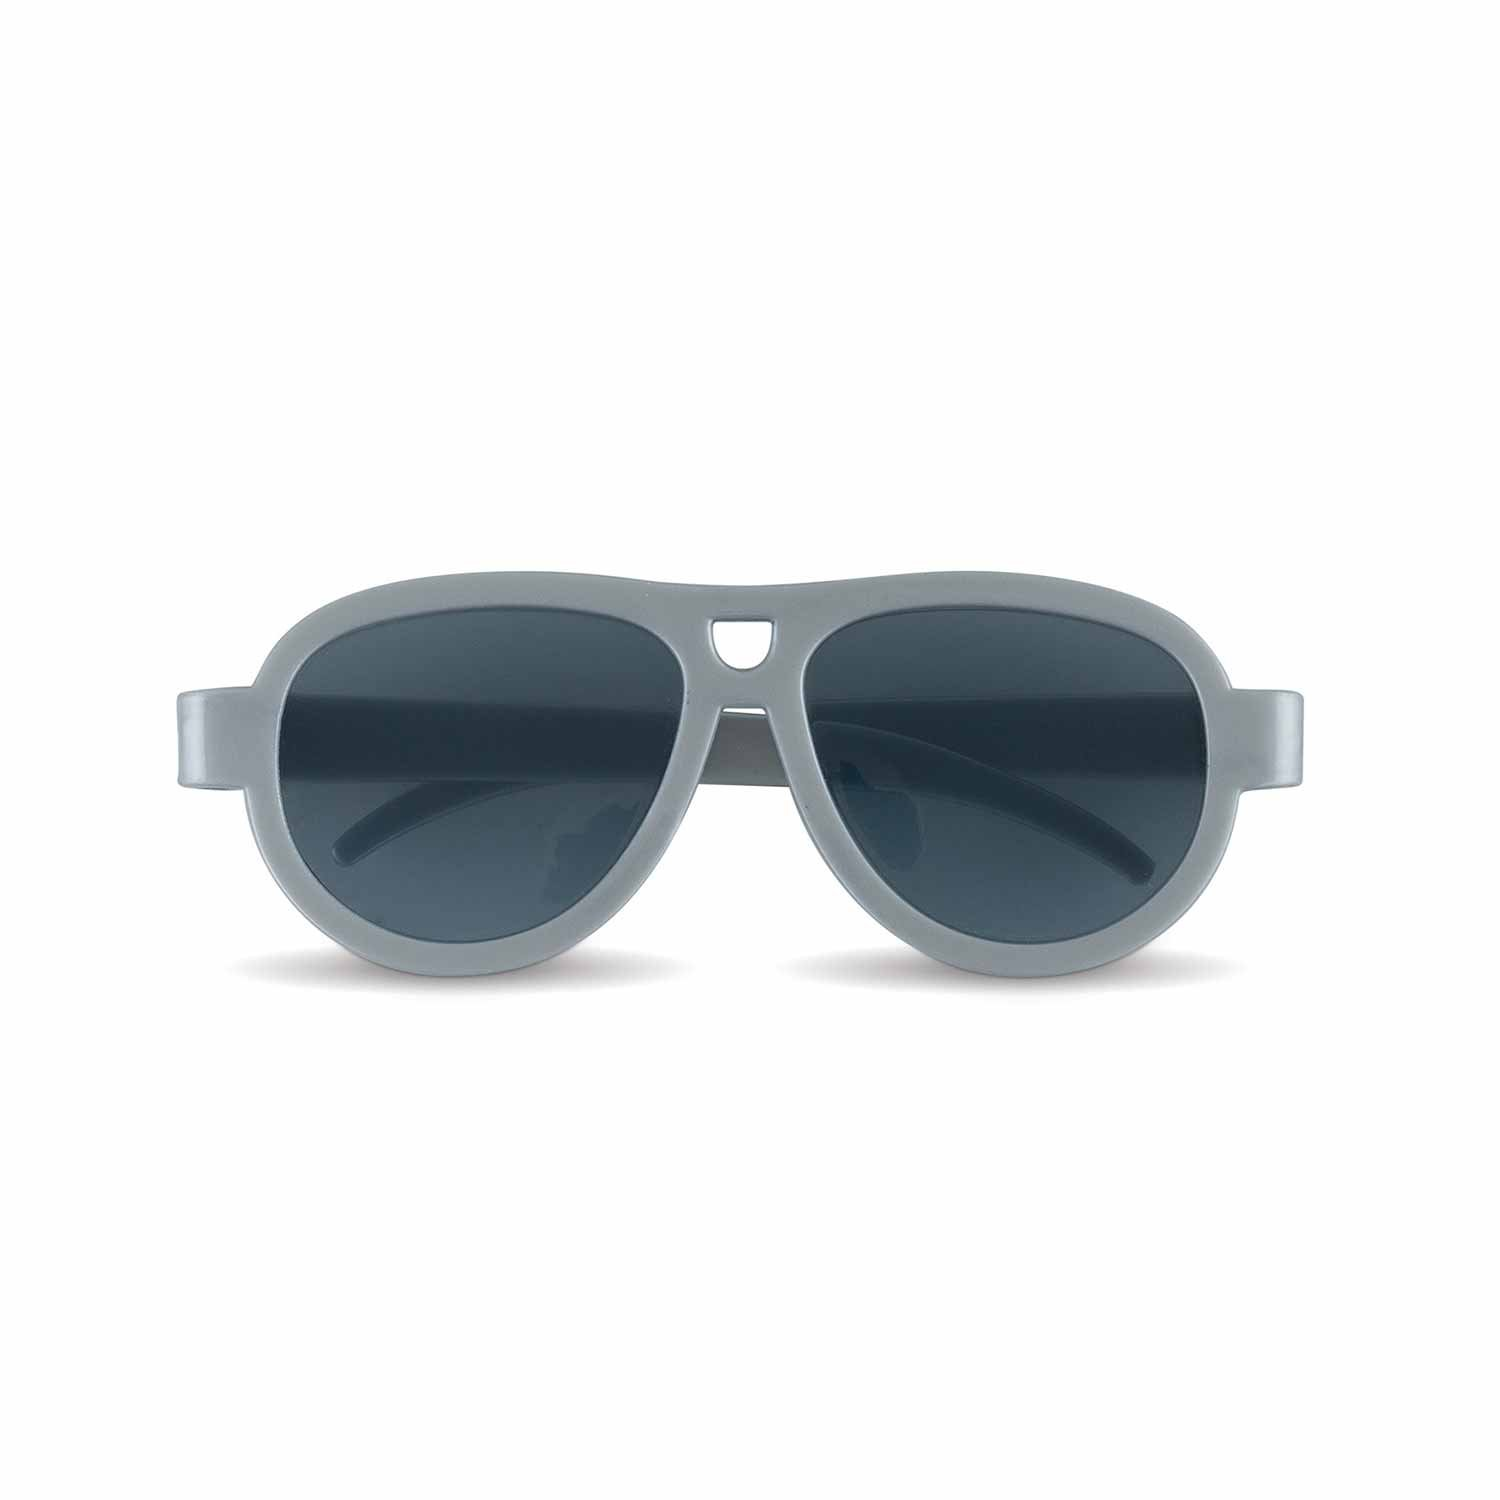 Corolle – Doll Fpl04 – Aviator sunglasses for my